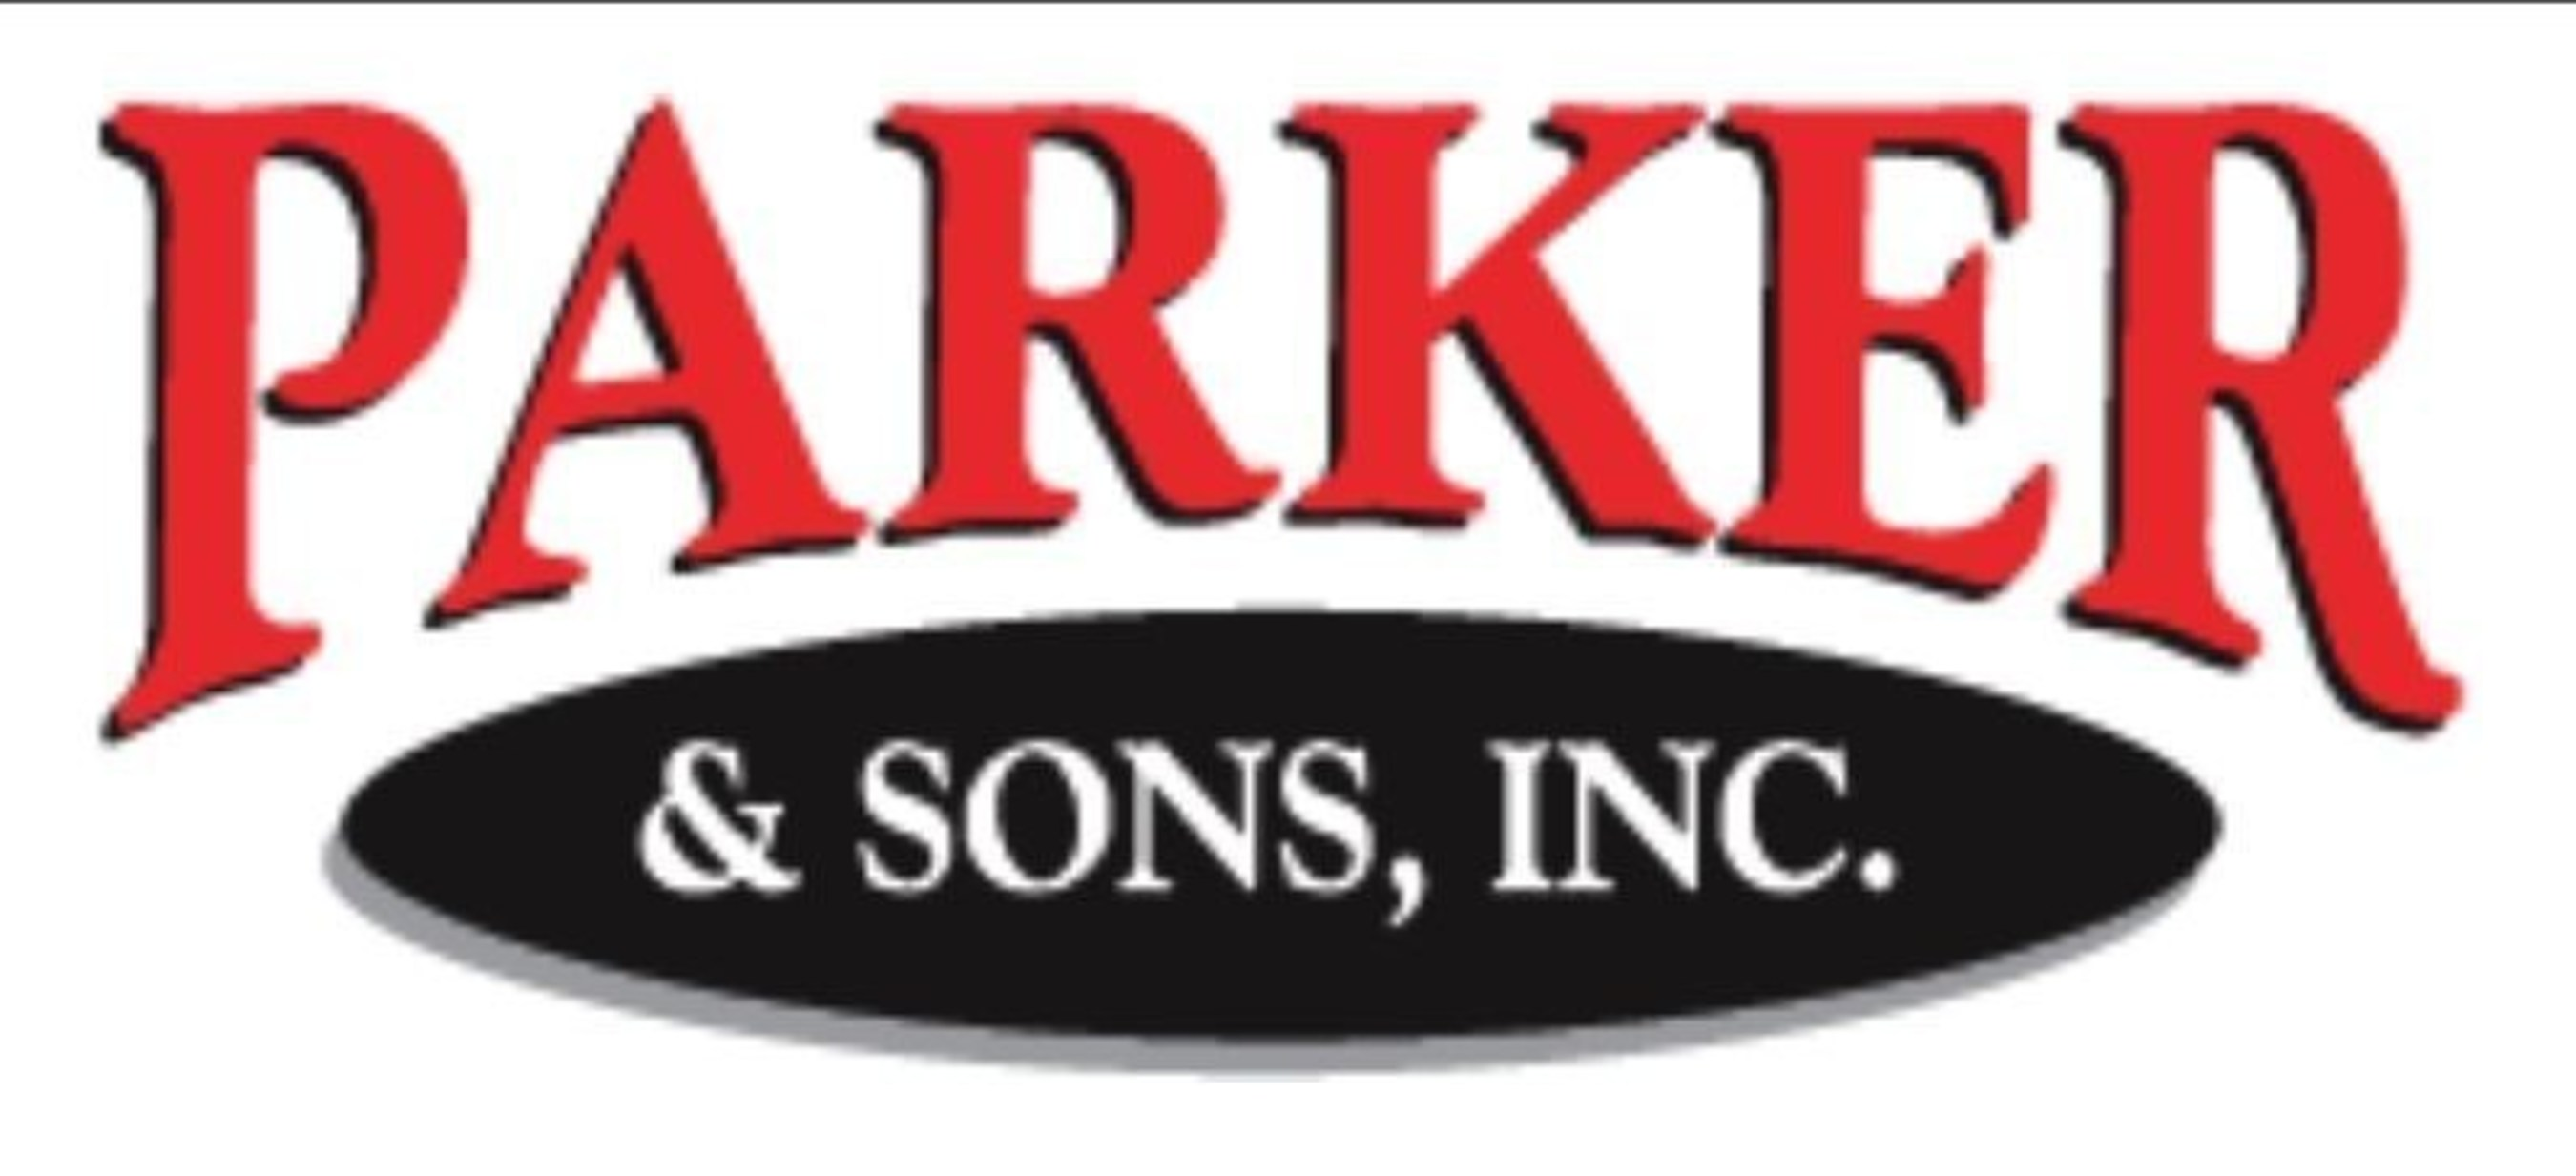 Parker & Sons Offers Incredible Range of Services